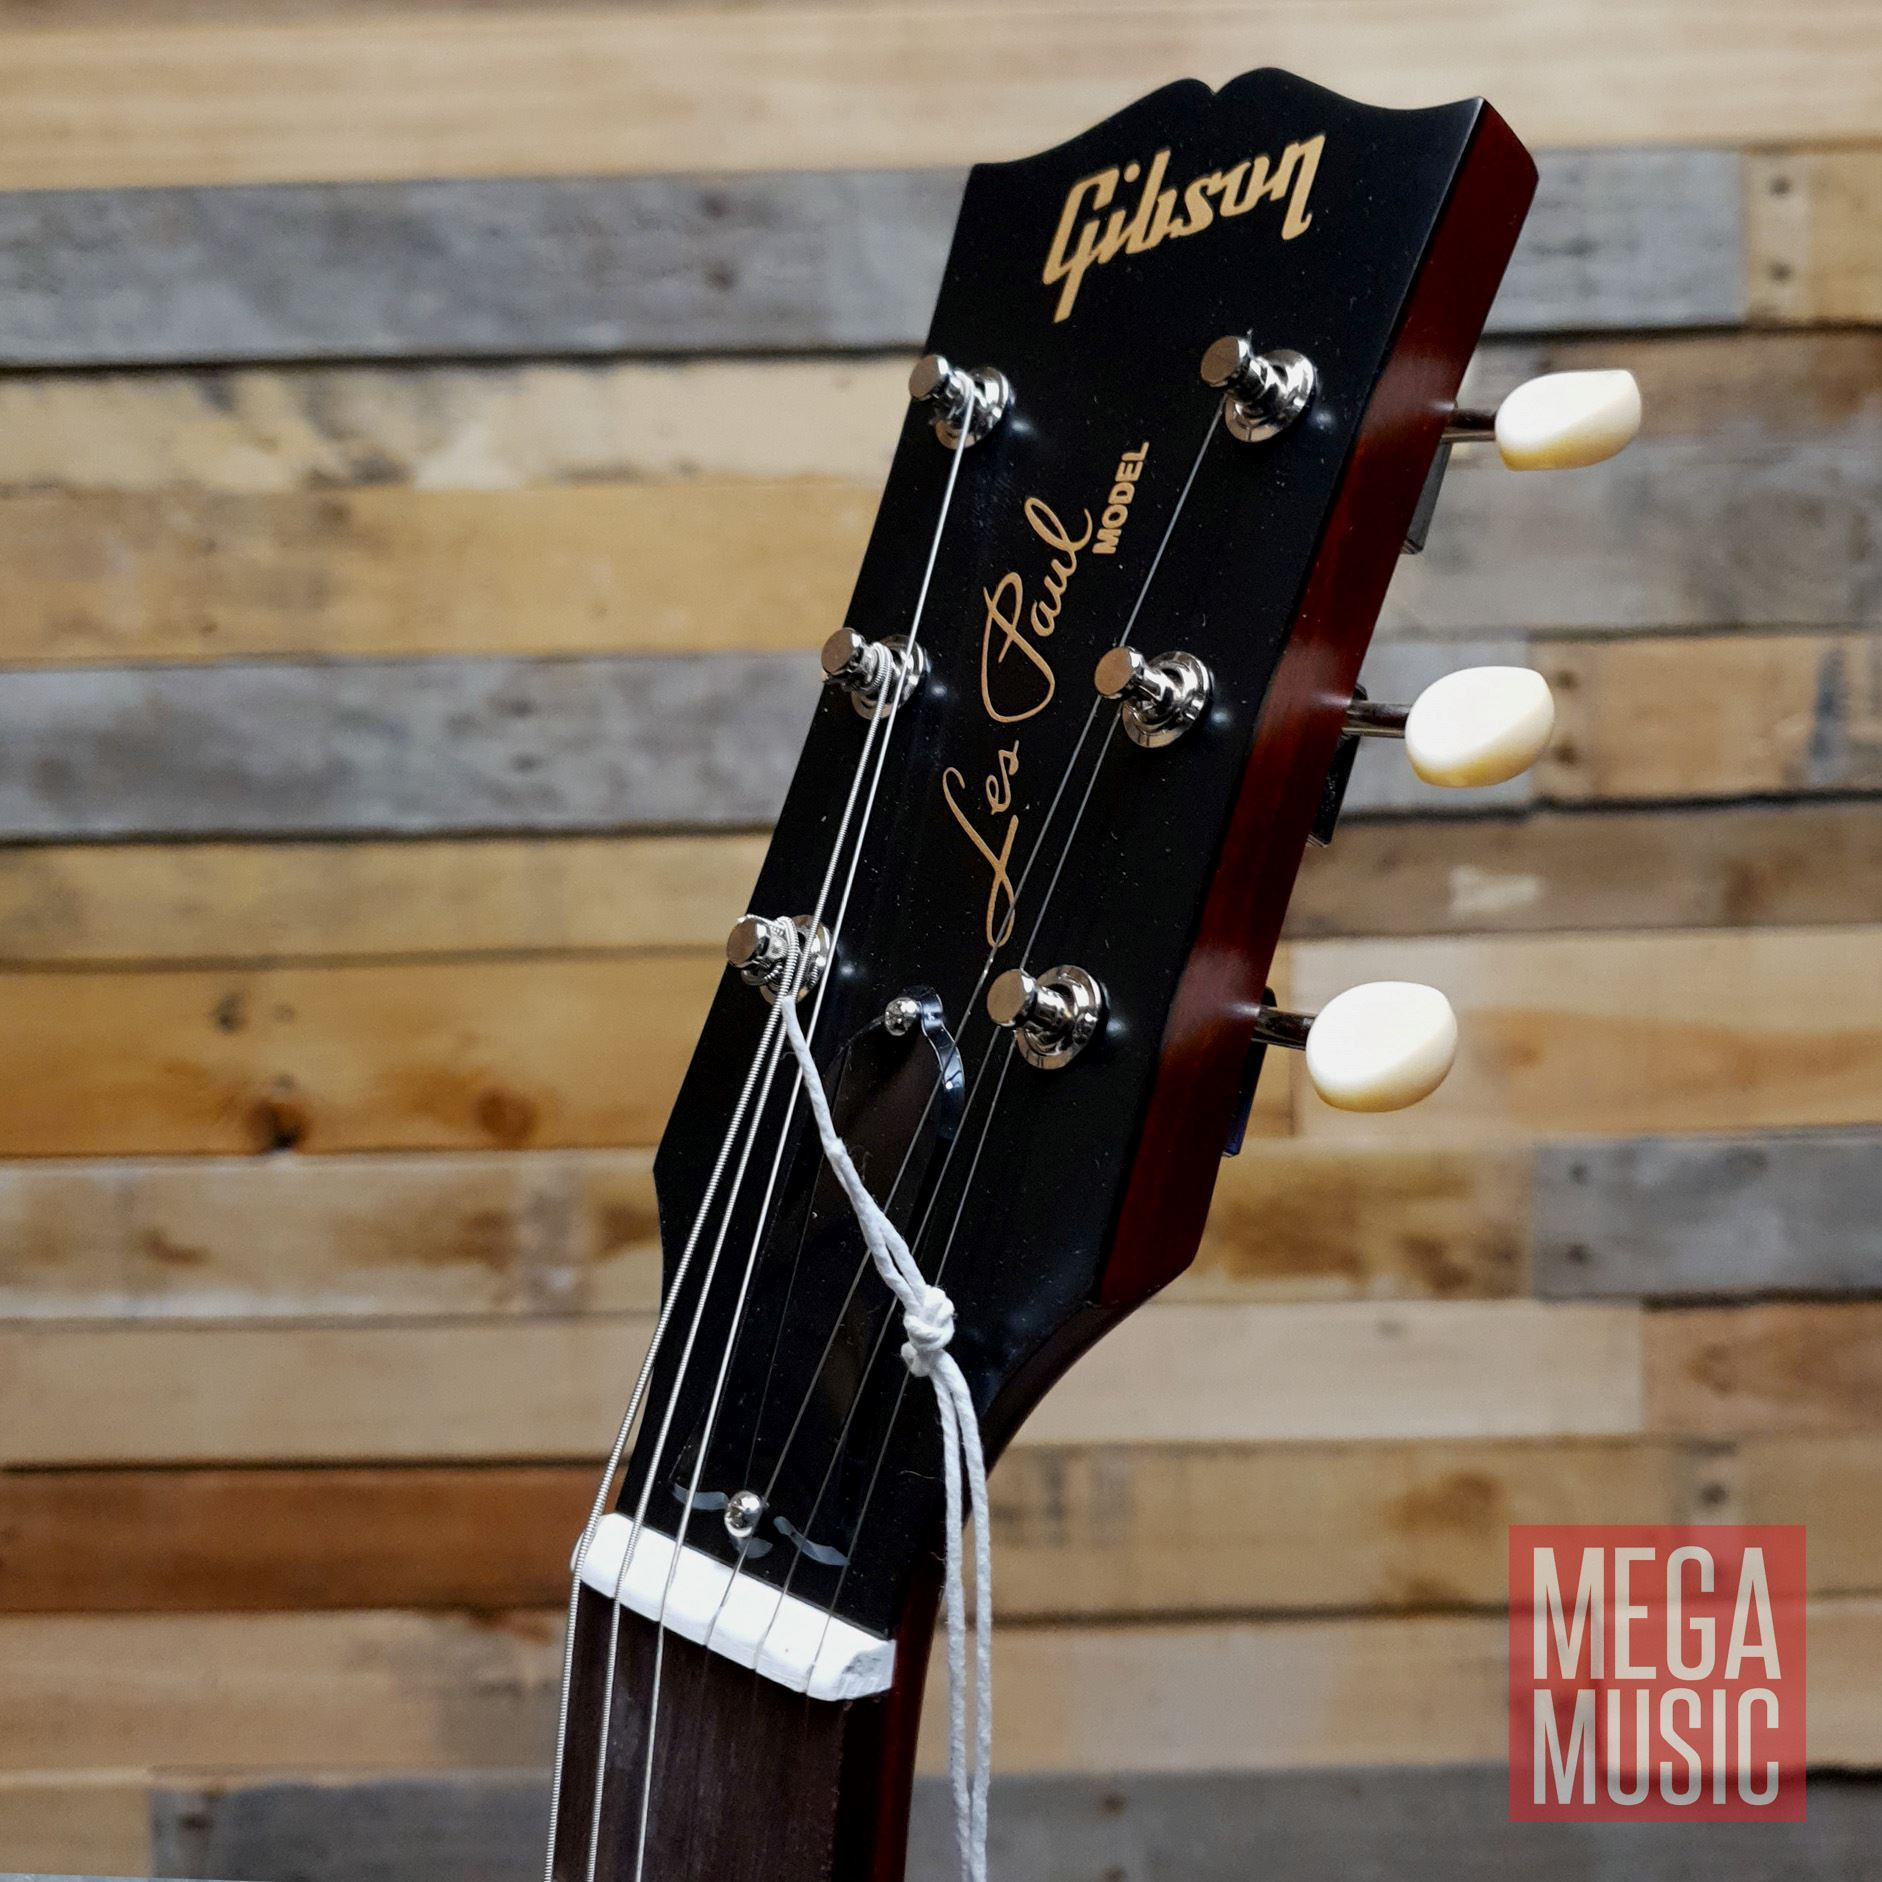 Gibson Les Paul Junior Tribute Double Cut Electric Guitar - Worn Cherry - Front Head